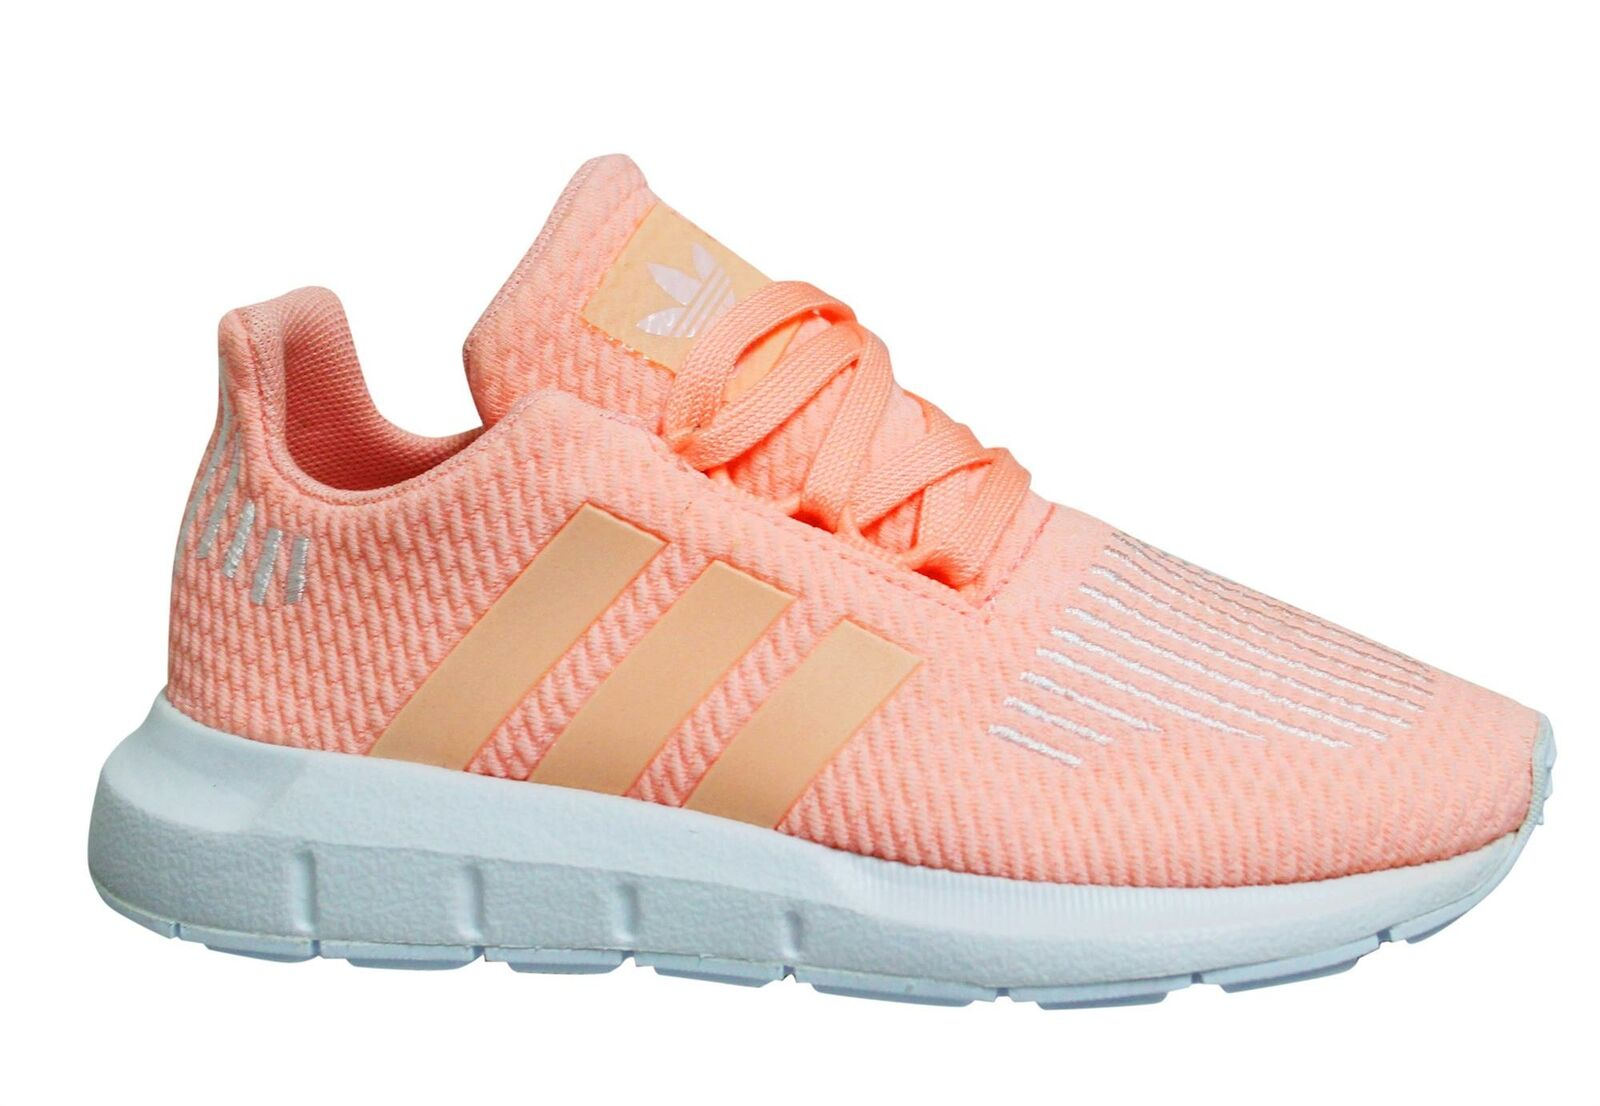 Adidas Originals Swift Run Clear Orange Low Lace Up Kids Trainers ...